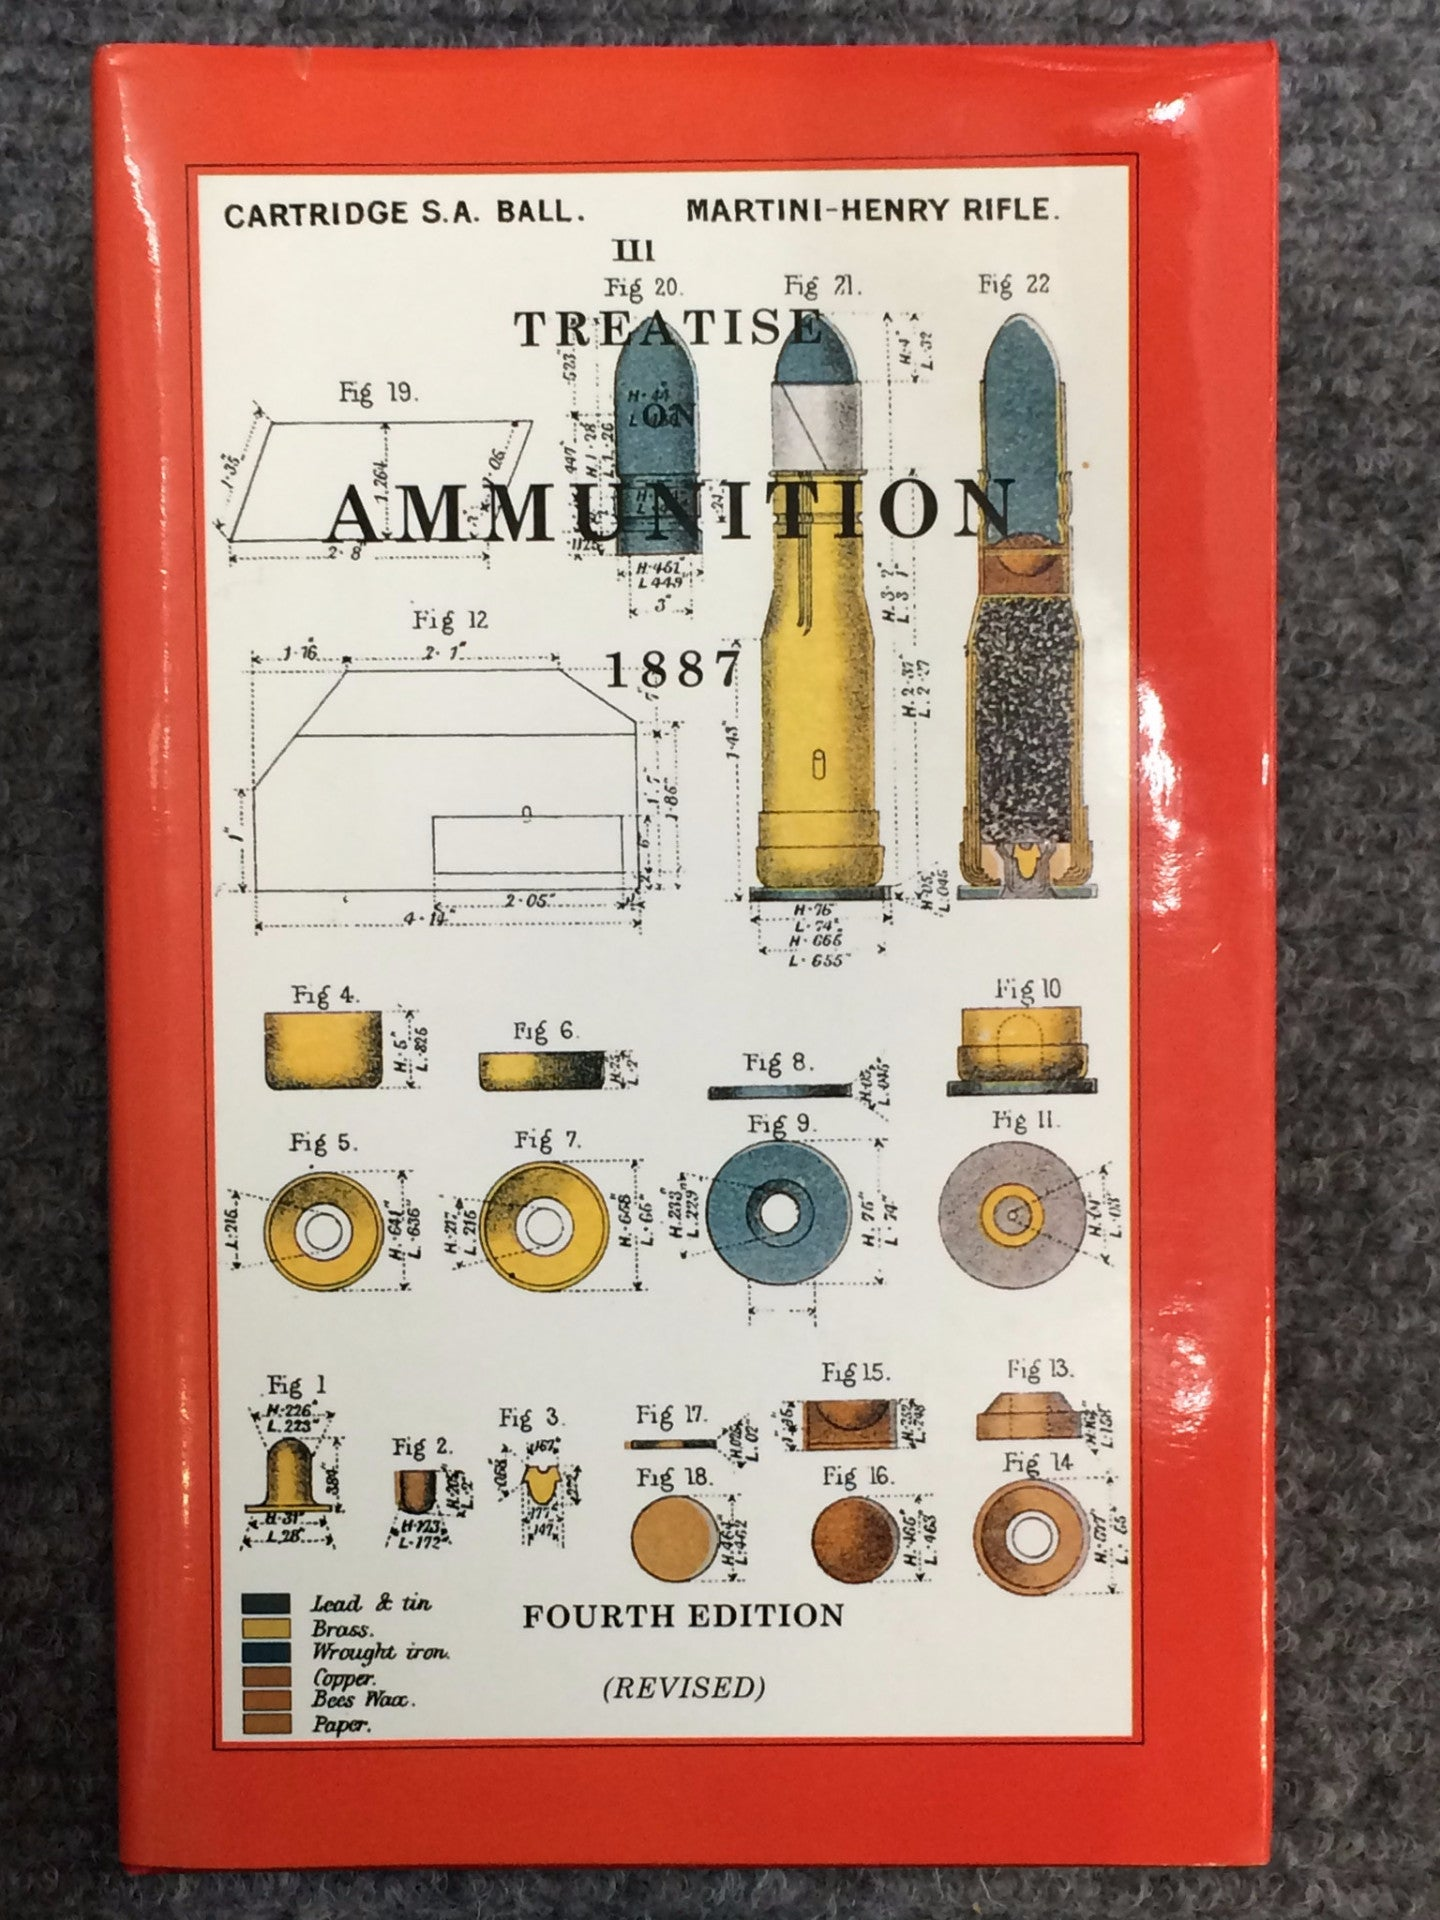 Treatise on Ammunition 1887